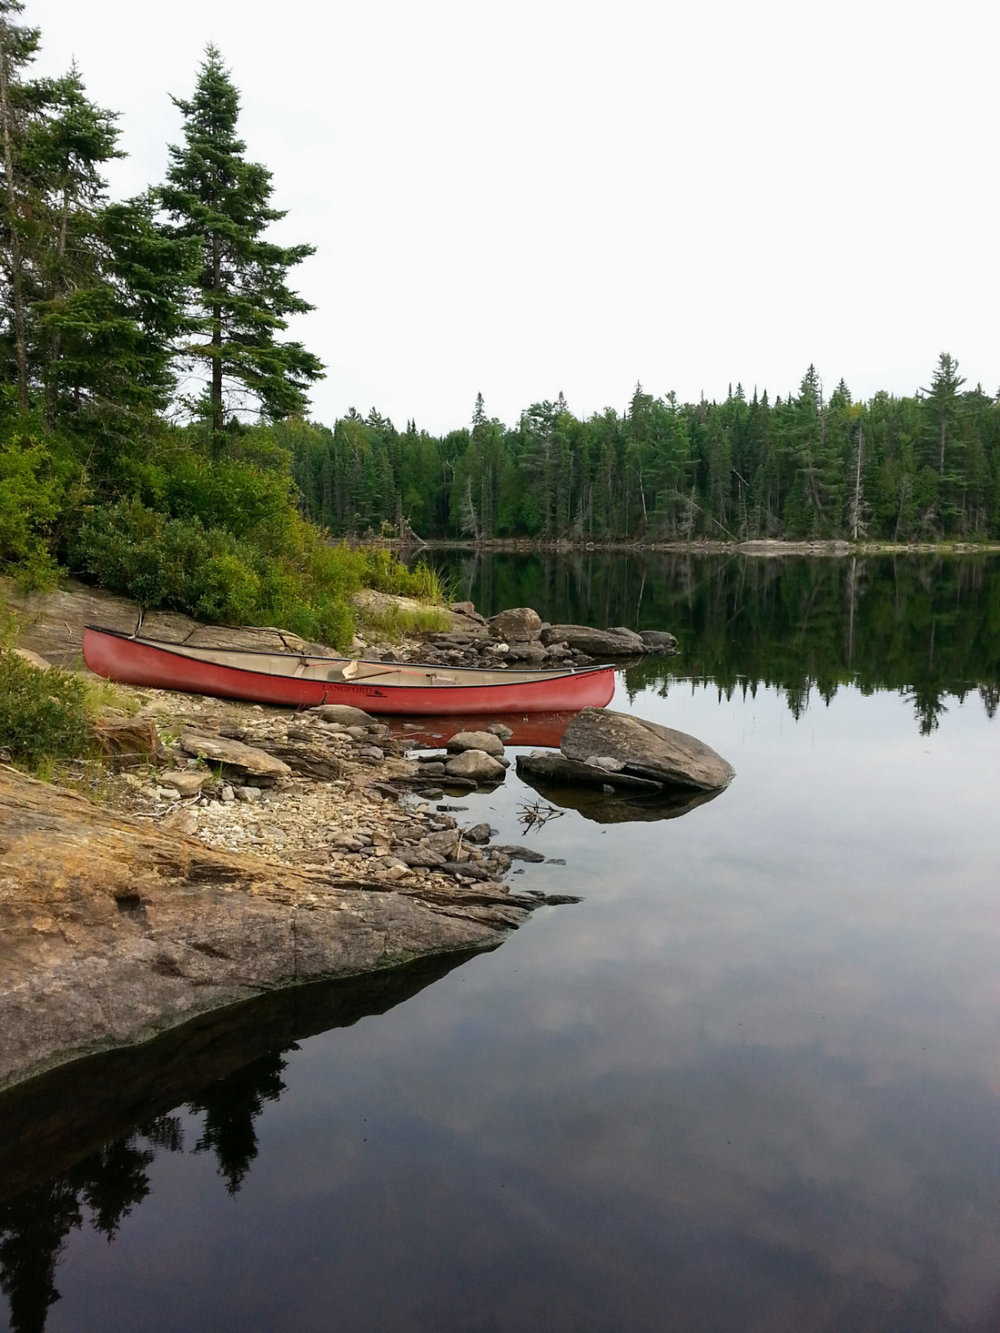 Colleen Worobess - Backcountry camping this past August 2018 at Big Bob Lake in Algonquin Park